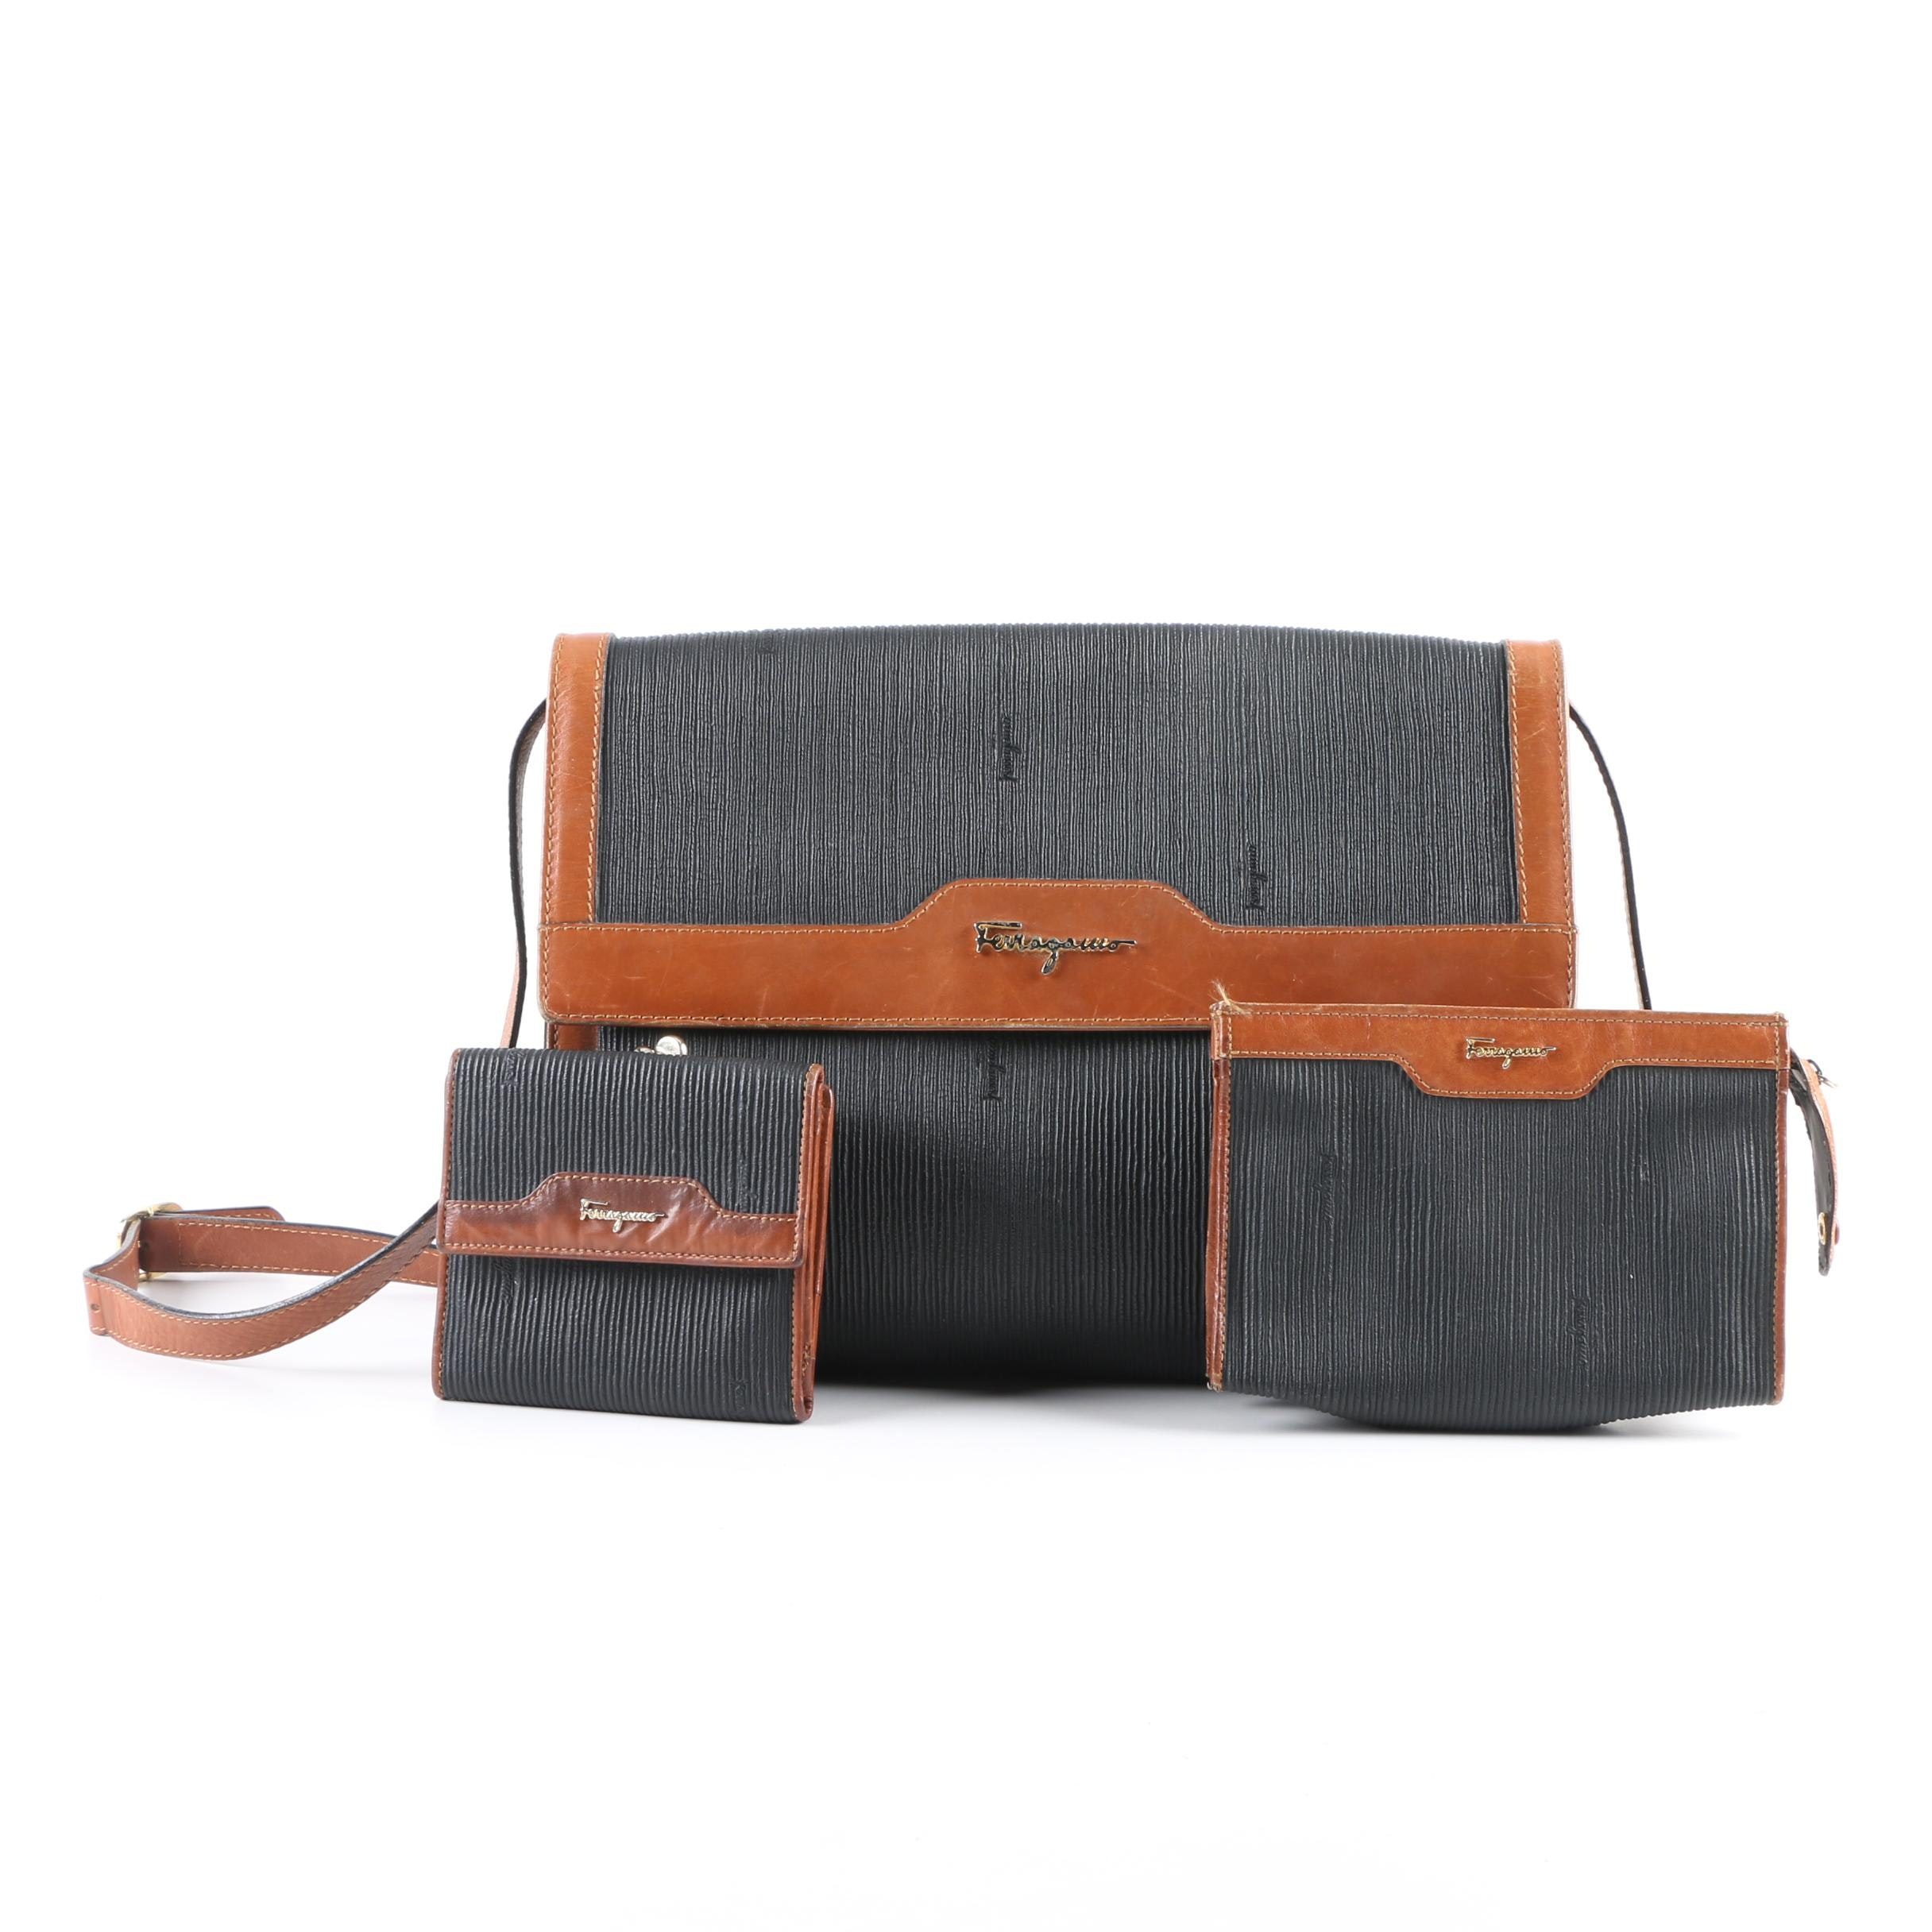 Salvatore Ferragamo Black and Brown Leather Shoulder Bag, Pouch and Wallet